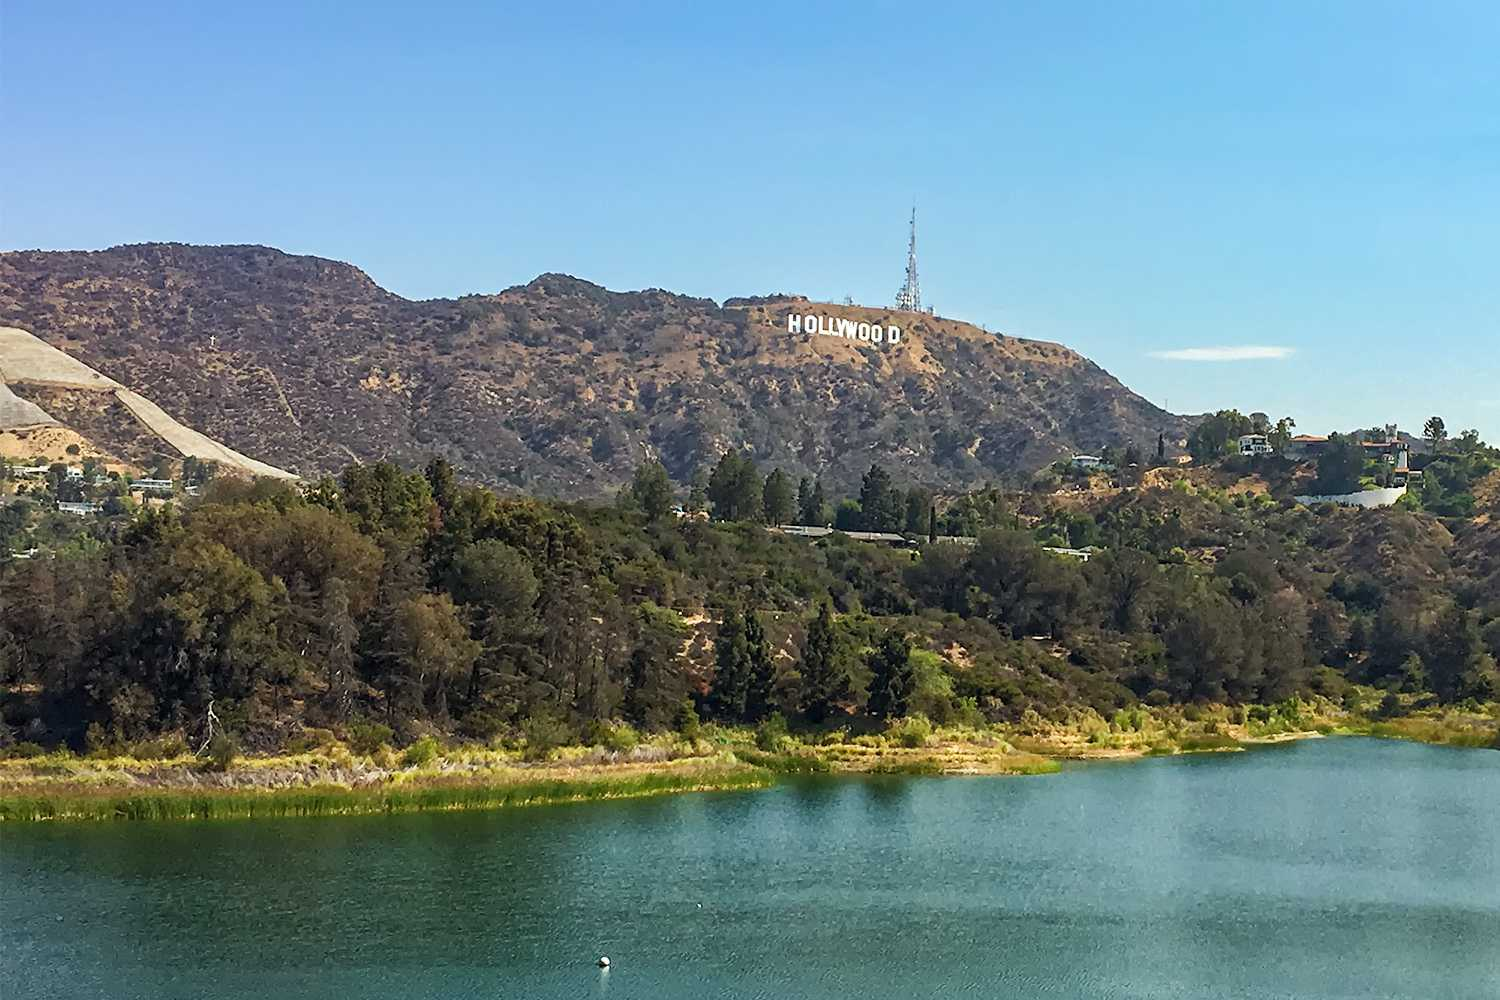 Hollywood Sign and the Hollywood Reservoir